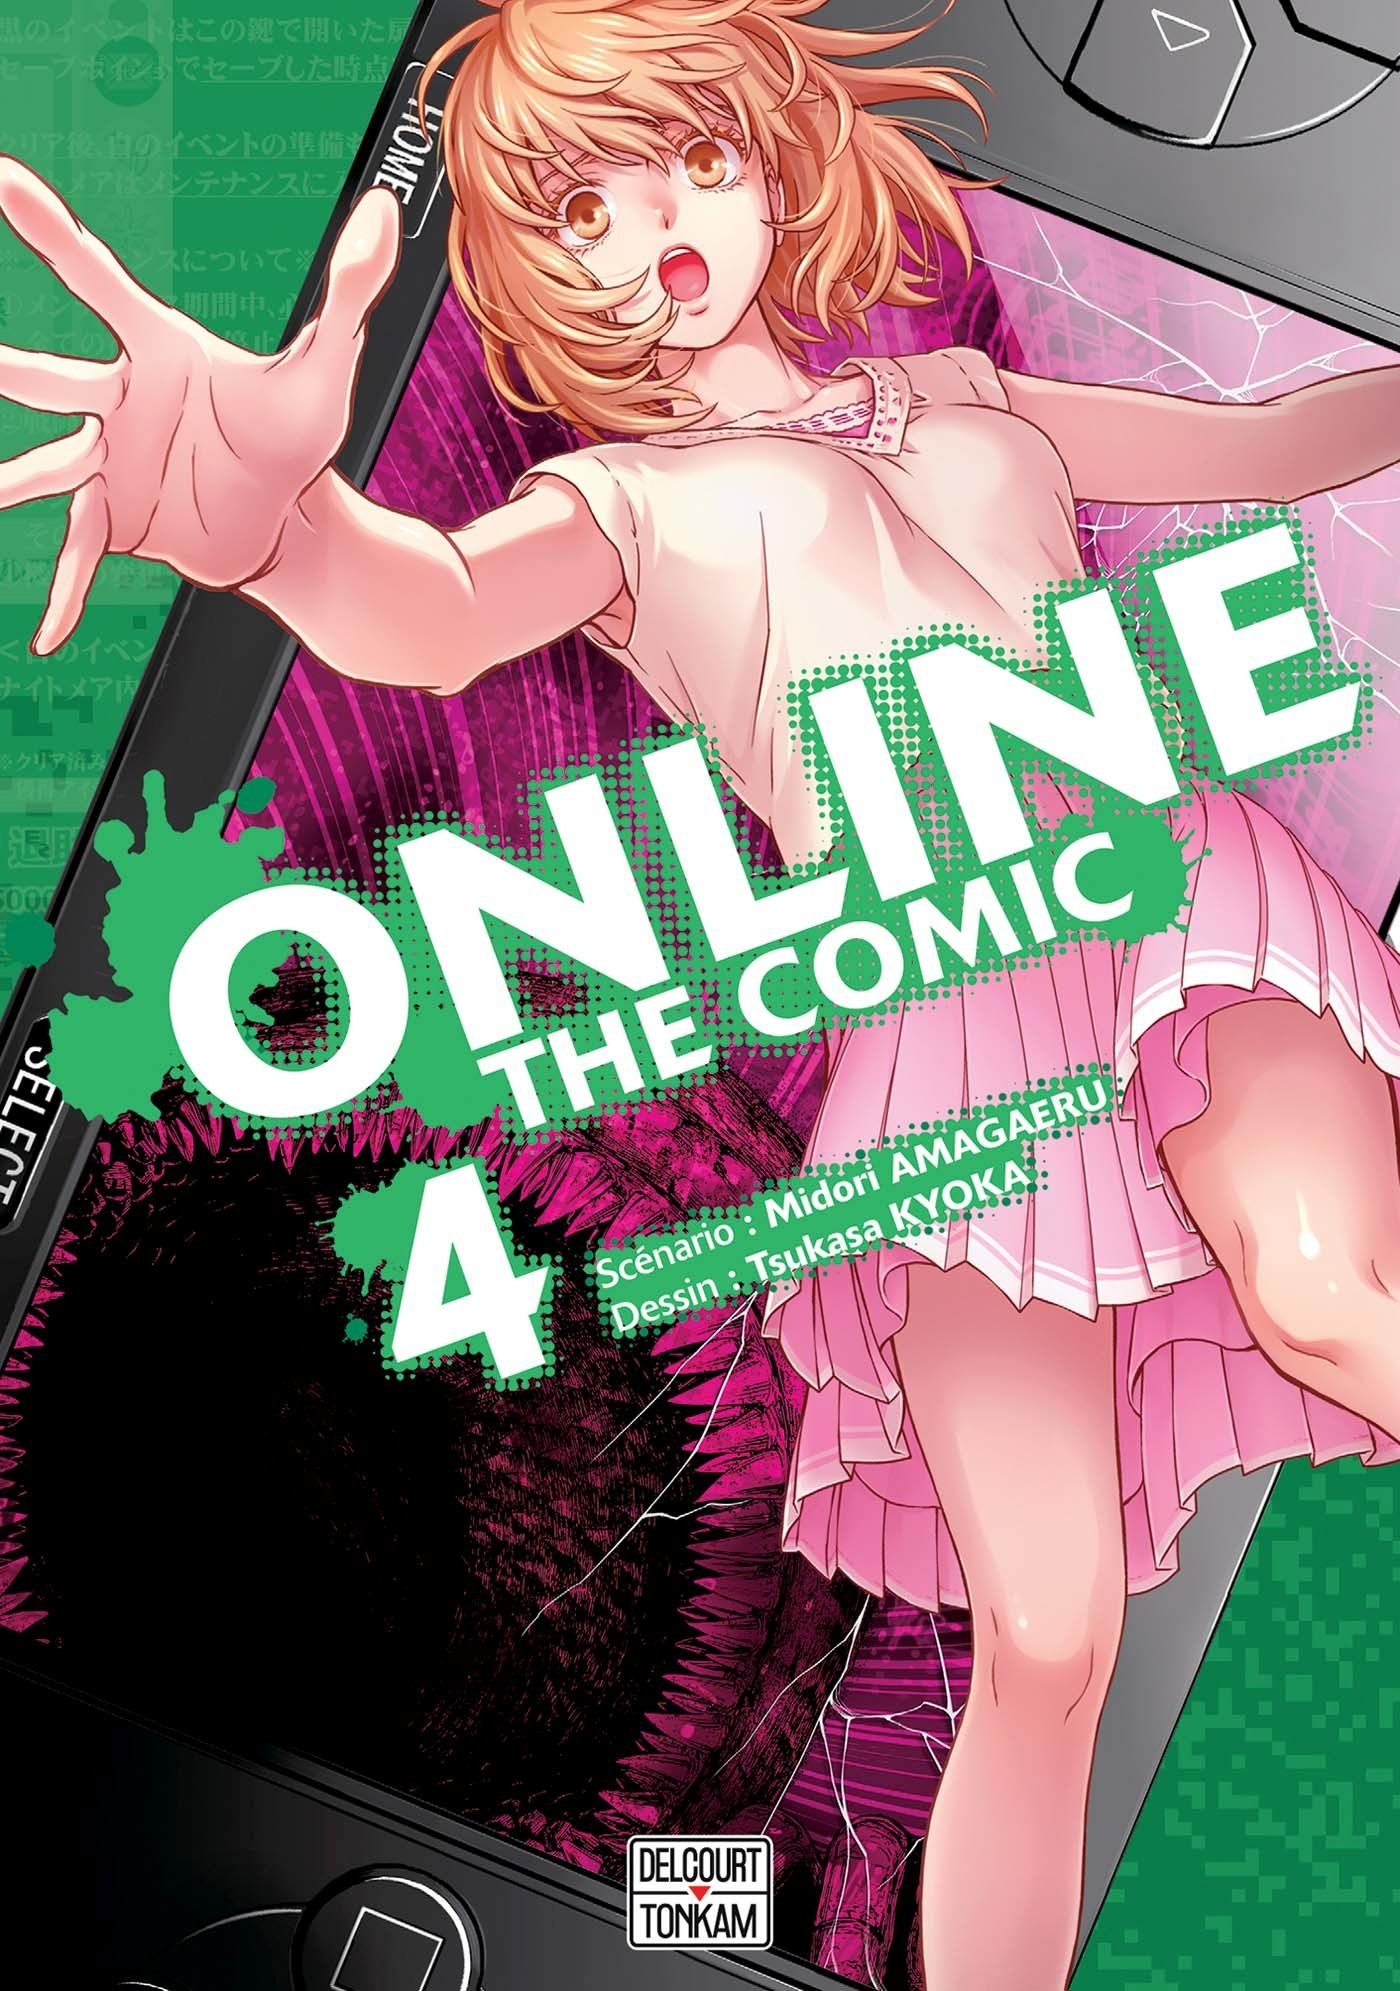 Online The comic 4